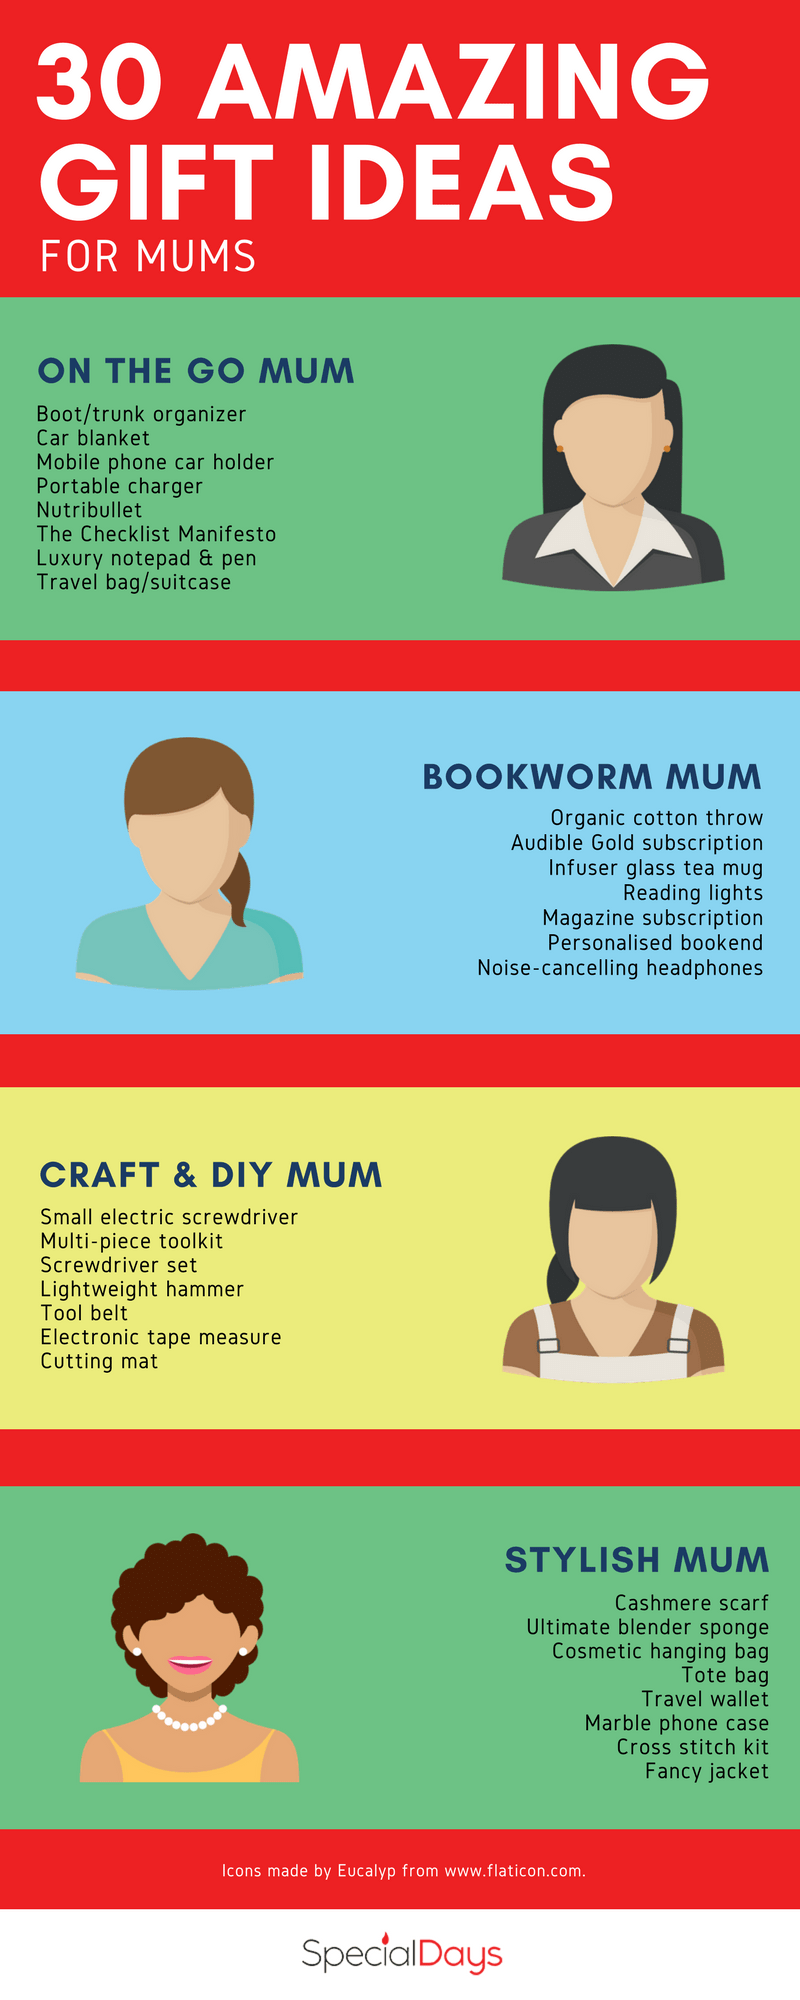 gifts-for-mums-infographic-plaza